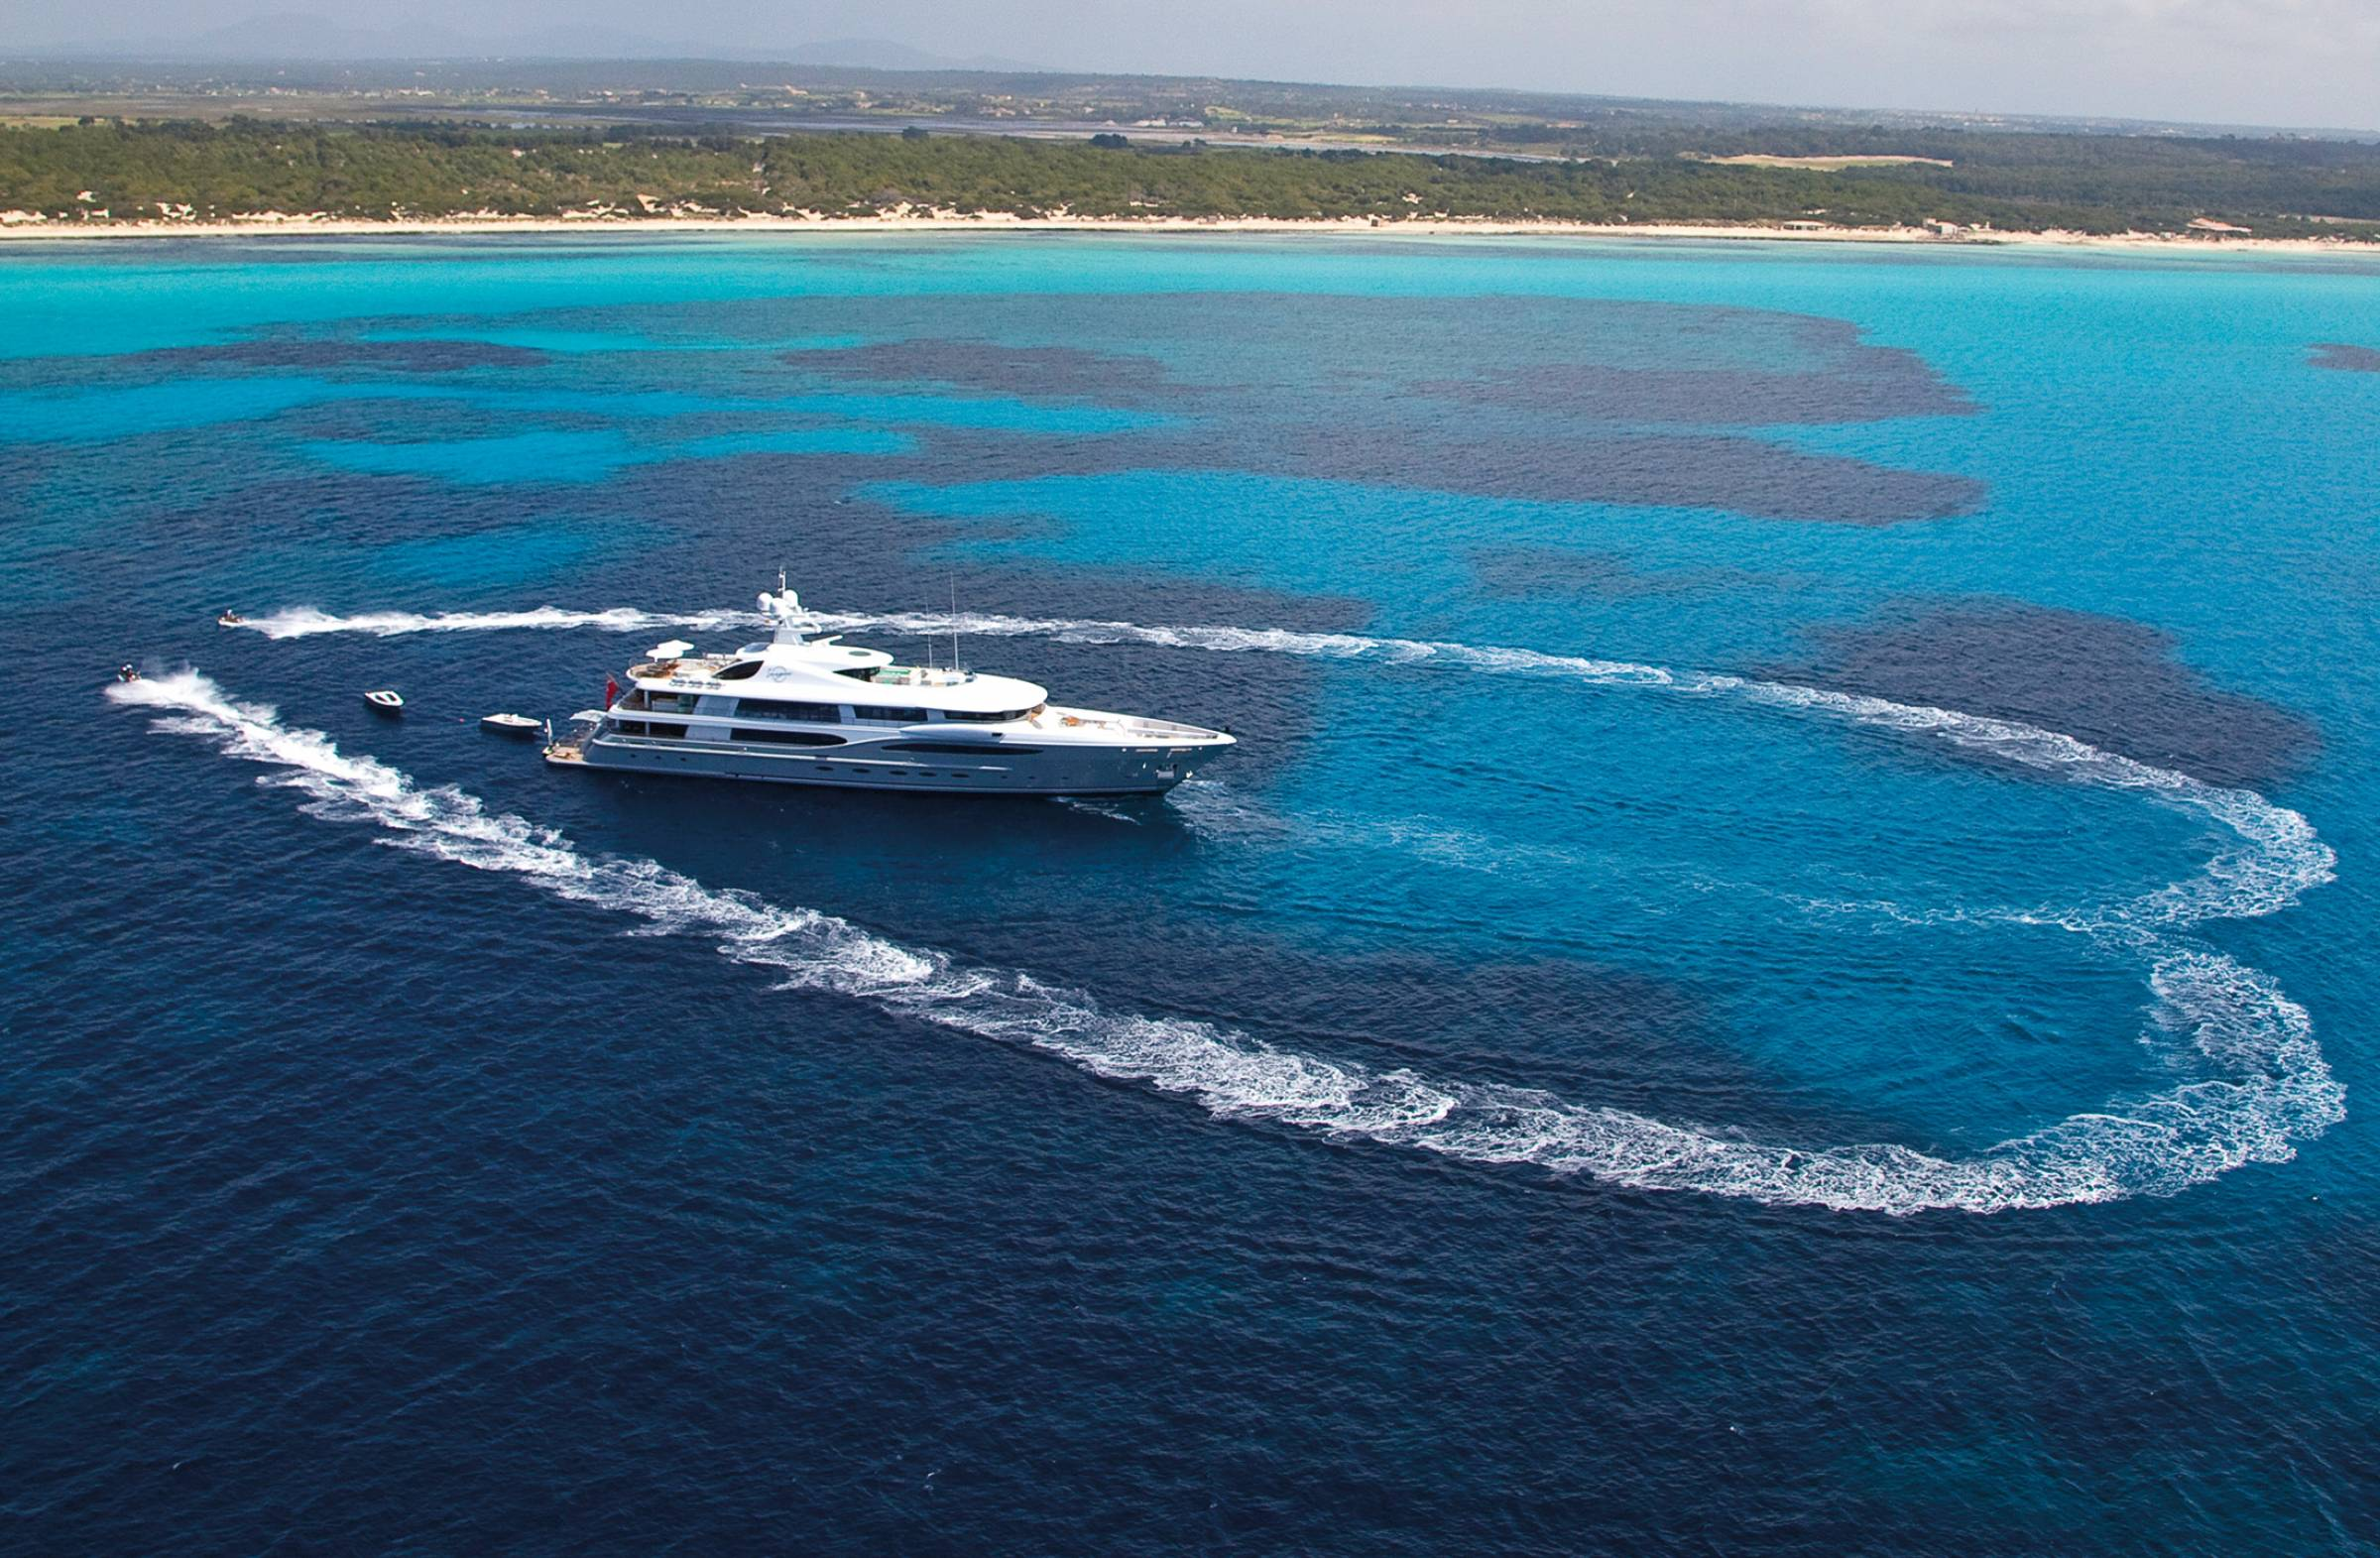 AMELS 212 Motor Yacht - Profile Above, Caribbean